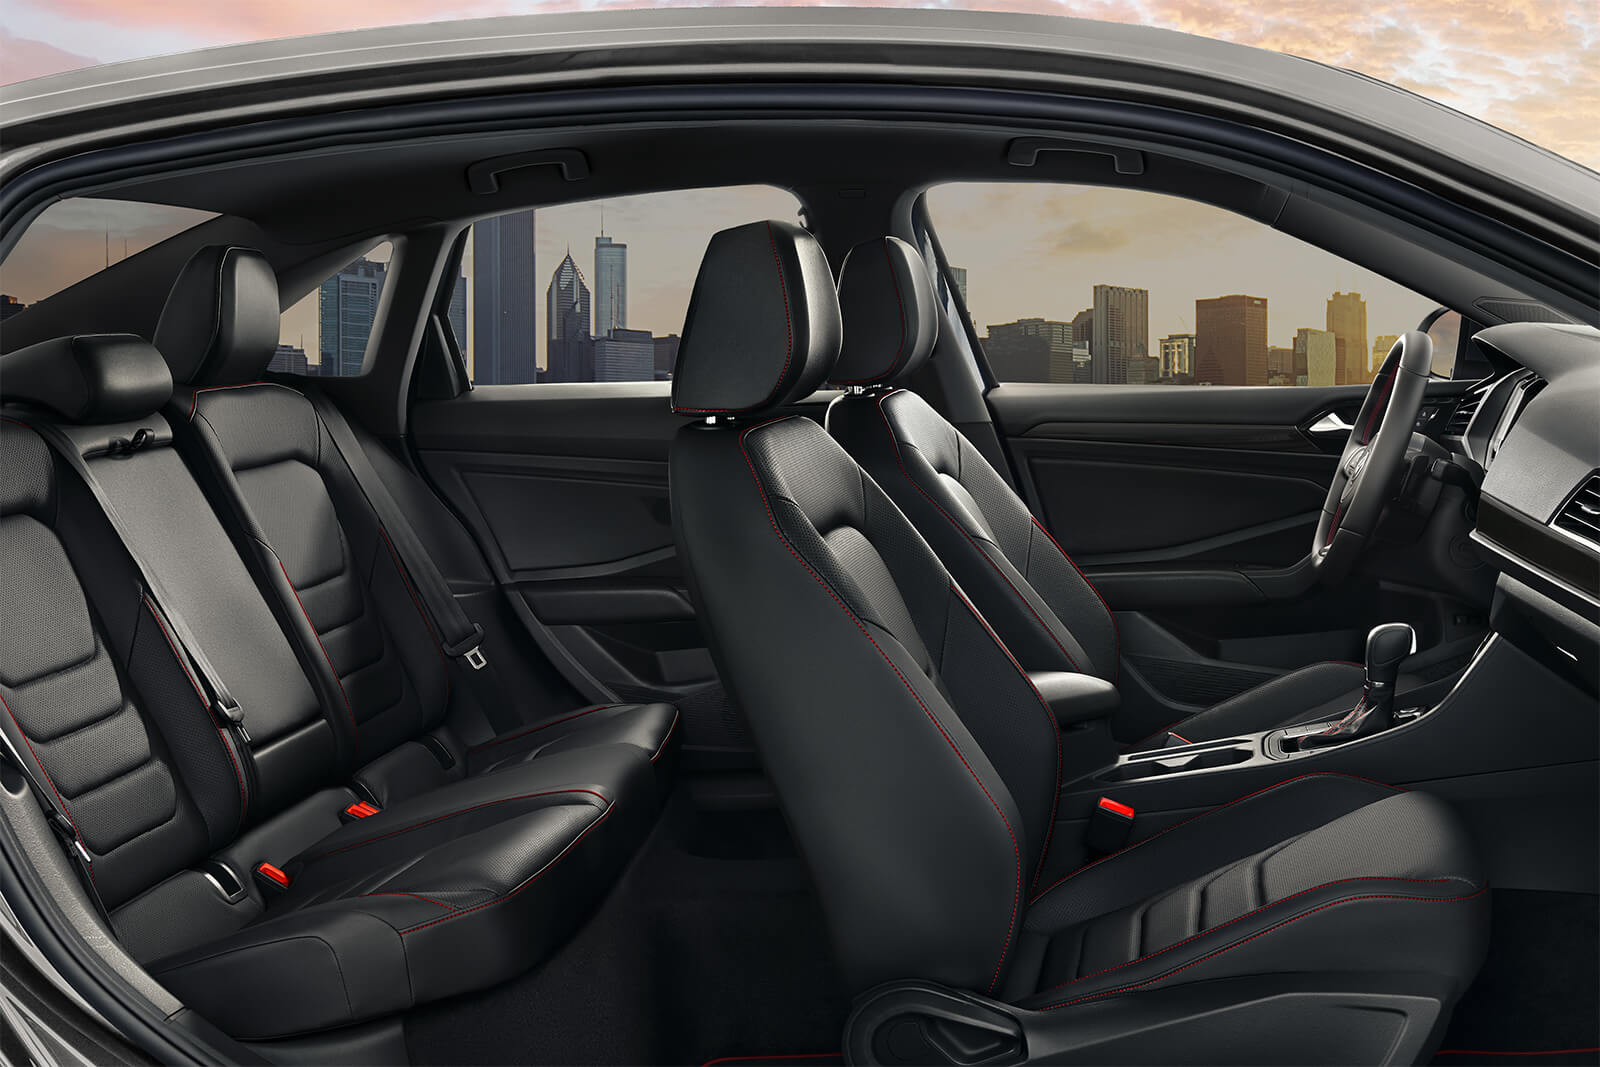 2019 Volkswagen Jetta GLI Autobahn Black Leather Interior Seating